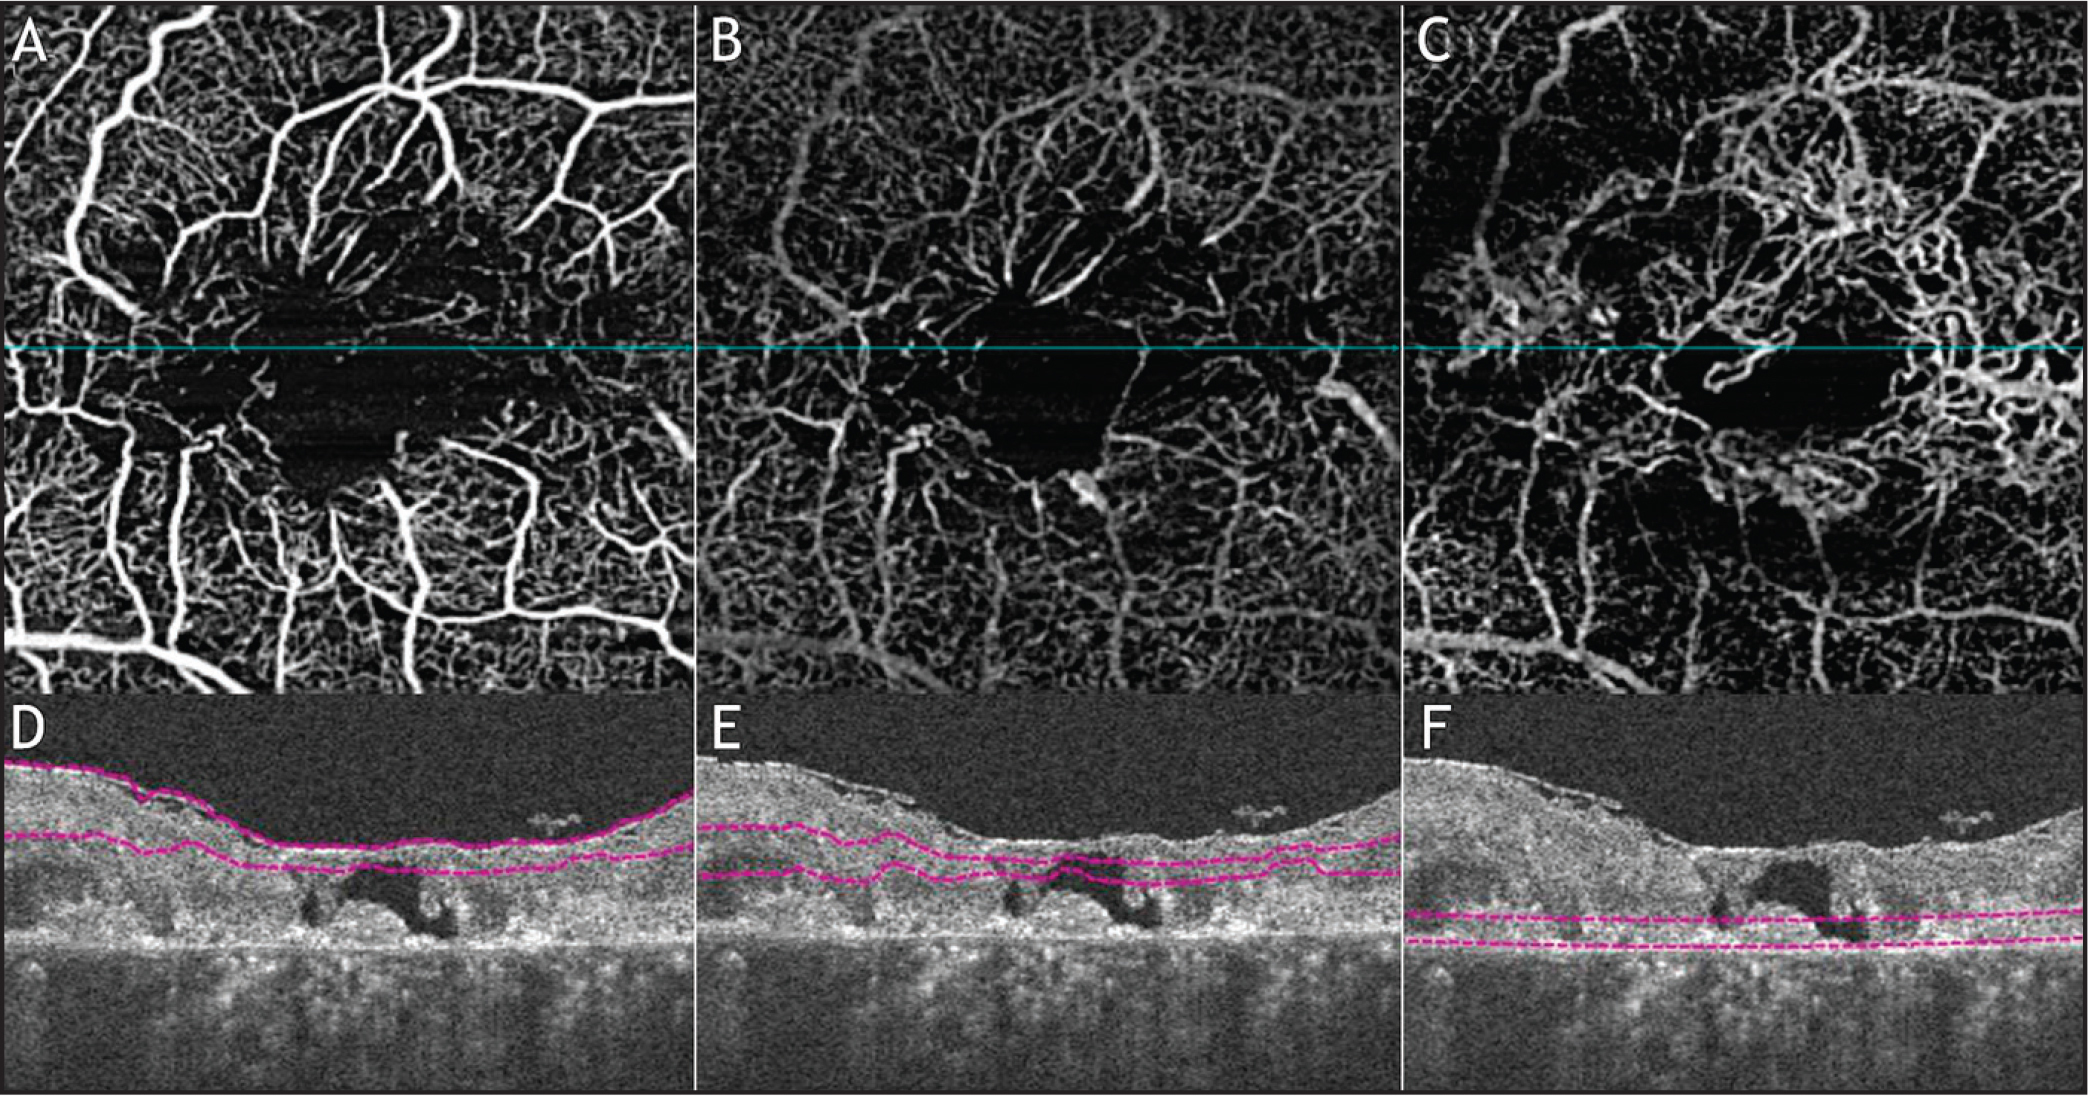 En face flow optical coherence tomography angiography (OCTA) (A–C) of the right eye of a 57-year-old woman with late, proliferative macular telangiectasia type 2 using a modified spectral-domain Cirrus OCT (Angioplex; Carl Zeiss Meditec, Dublin, CA) of the total retina color-coded, superficial, deeper plexus, and outer retina layers, with respective B- scans (D–F). On the B-scans it is possible to see intraretinal cavities and outer retina loss, characteristic of macular telangiectasia type 2. (A) Superficial en face flow OCTA image showing the presence of microvascular abnormalities in the juxtafoveal region. (B) Deeper plexus en face flow OCTA image showing the telangiectatic and dilated vessels in the middle retinal layers. (C) Outer retina en face flow OCTA image detecting a neovascular network that is not apparent on the structure B-scan. (D–F) Representative B-scans showing the boundaries (red lines) of the slabs that created the en face flow image showed on A–C.